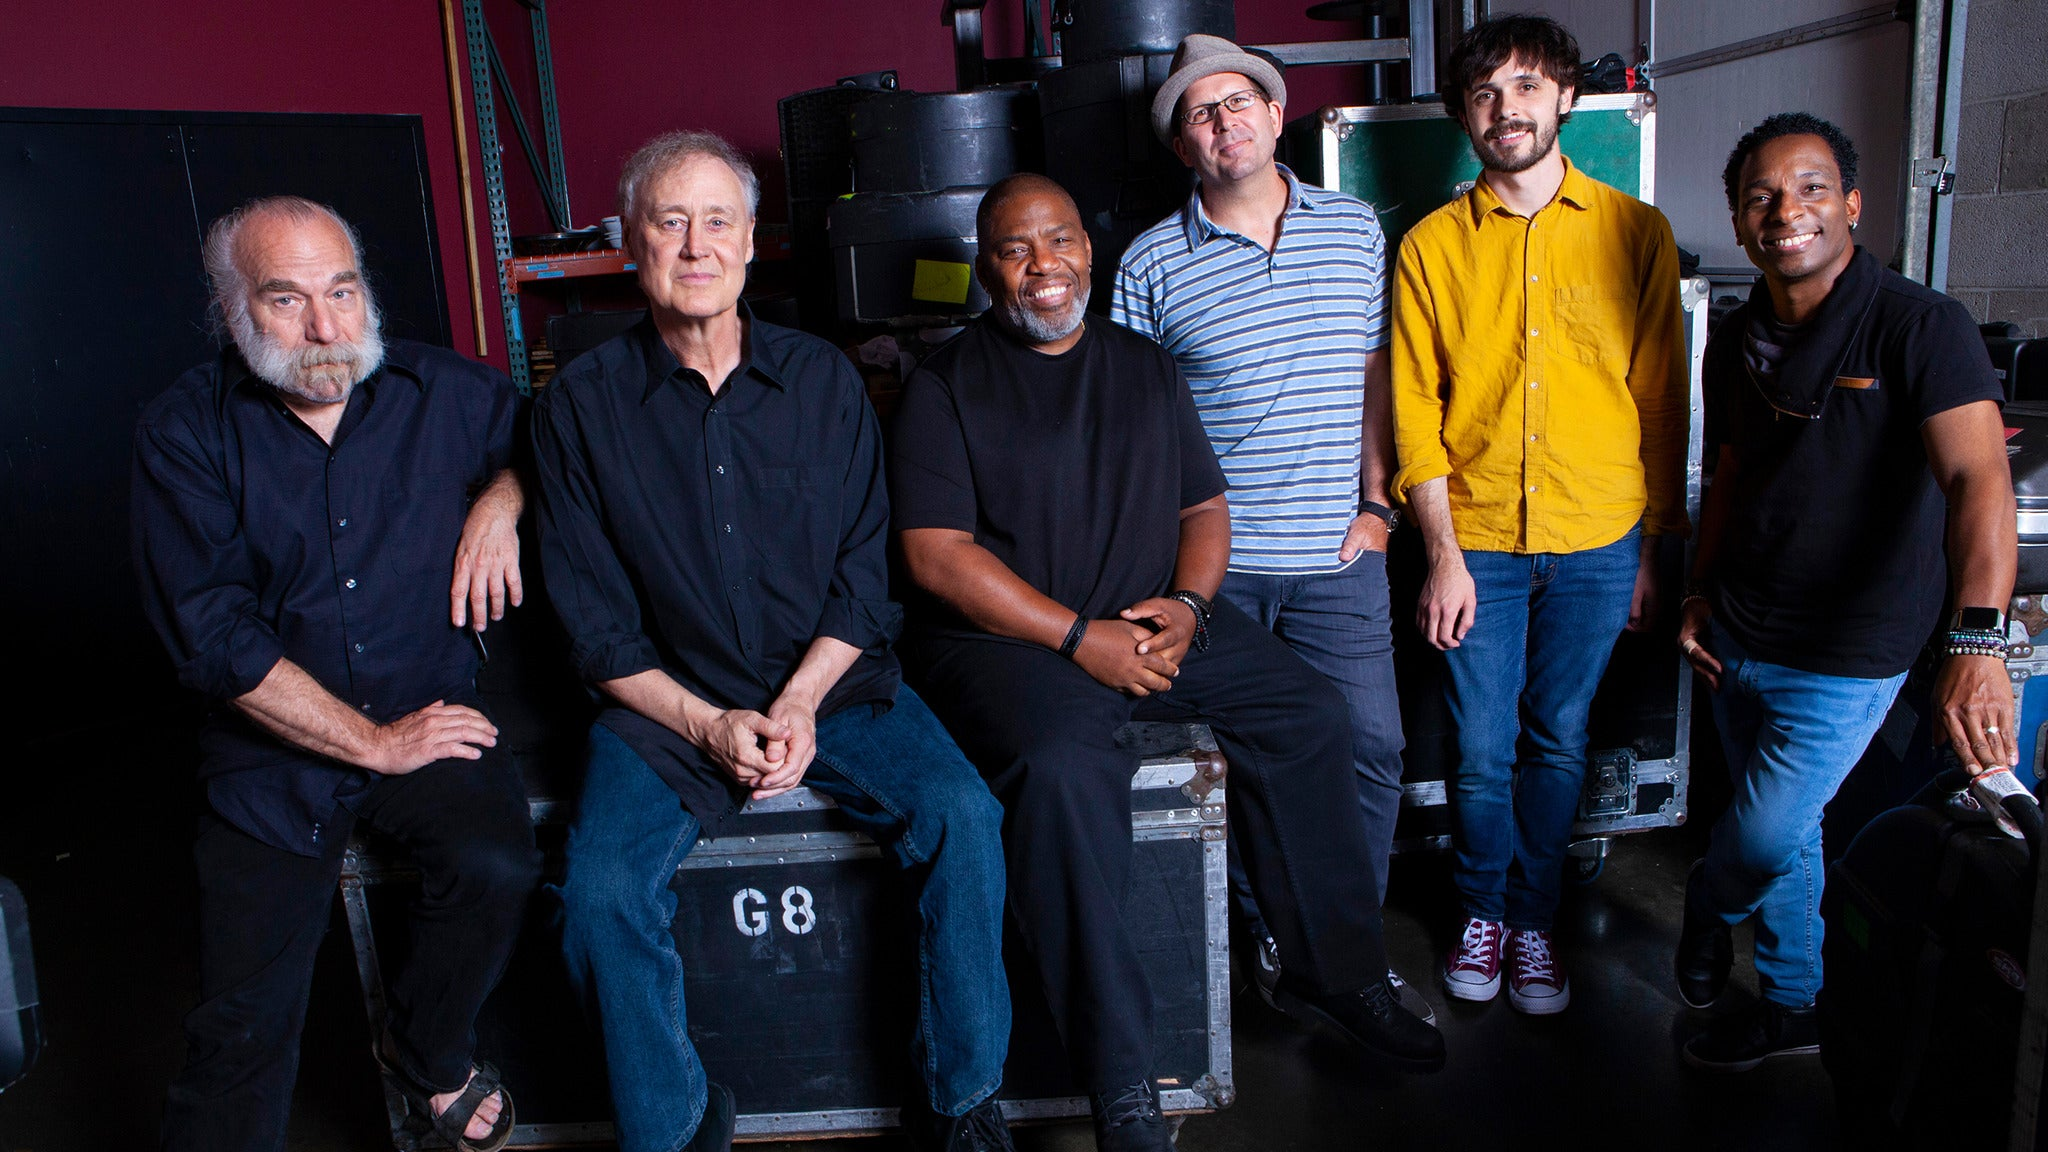 Bruce Hornsby & the Noisemakers pre-sale password for show tickets in Durham, NC (Carolina Theatre )